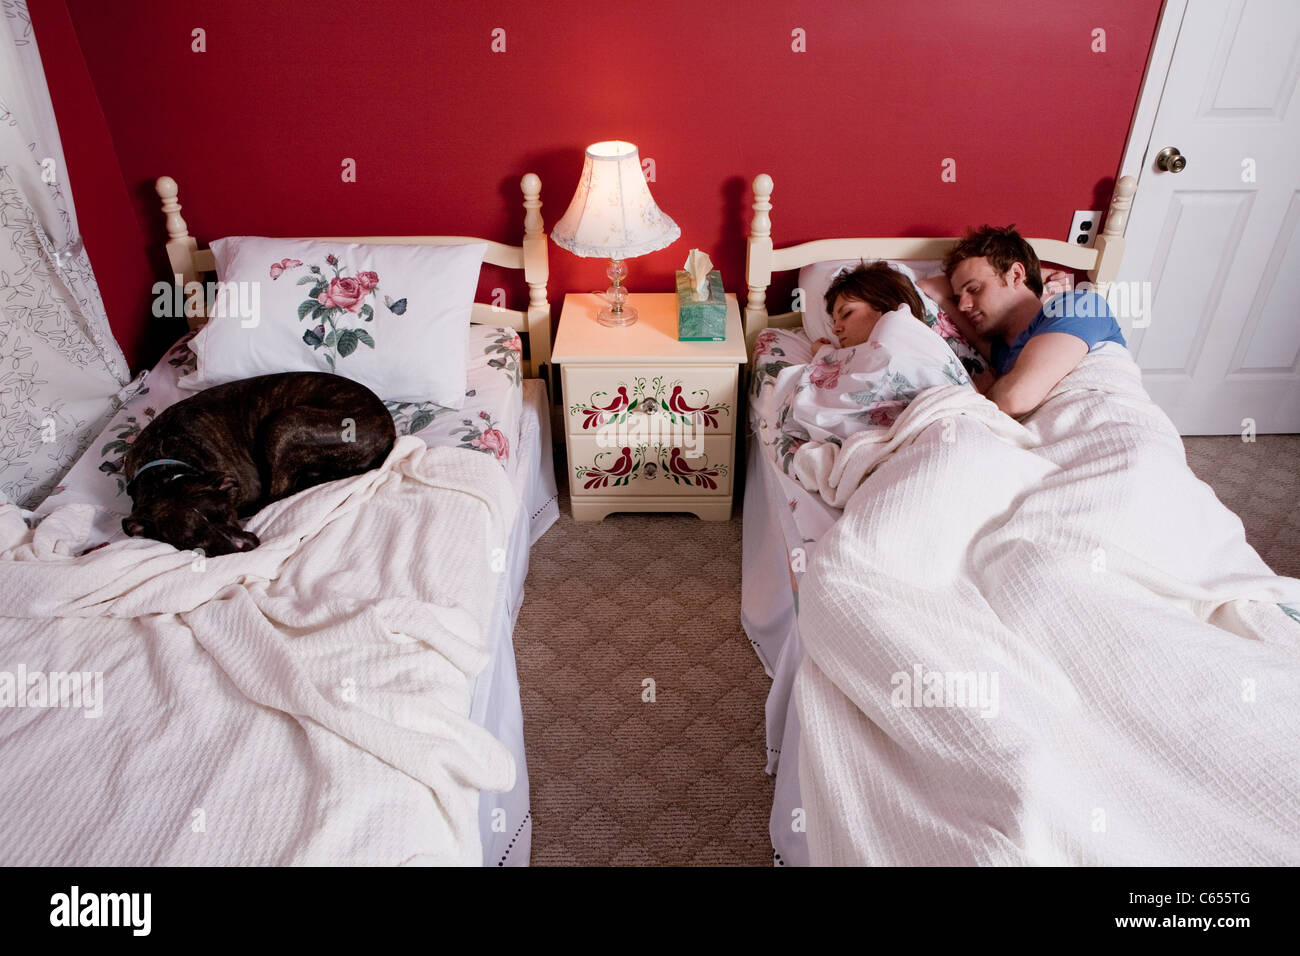 Young couple sharing single bed, dog asleep on other bed - Stock Image